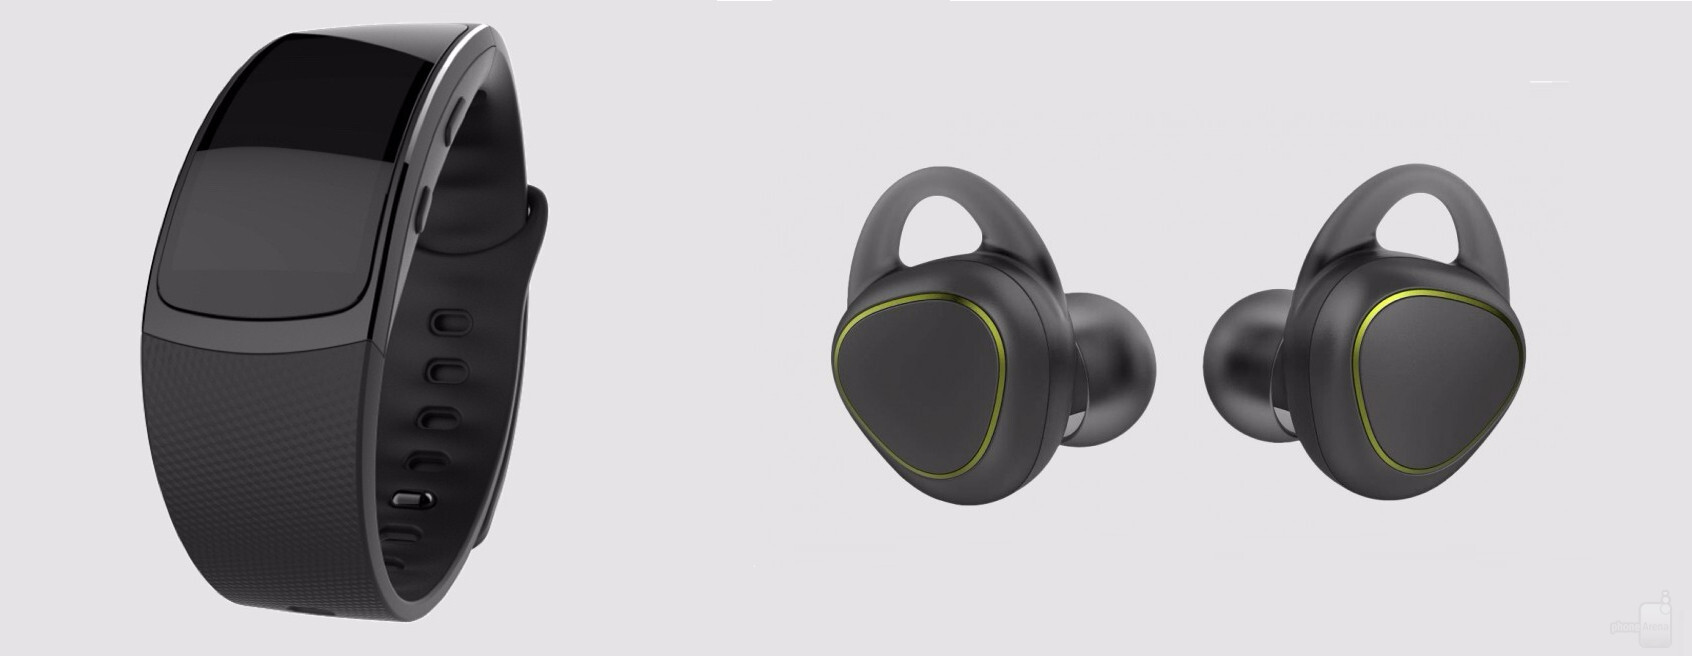 Samsung Accidentally Showcases New Fitness Band And Bluetooth Earbuds Phonearena